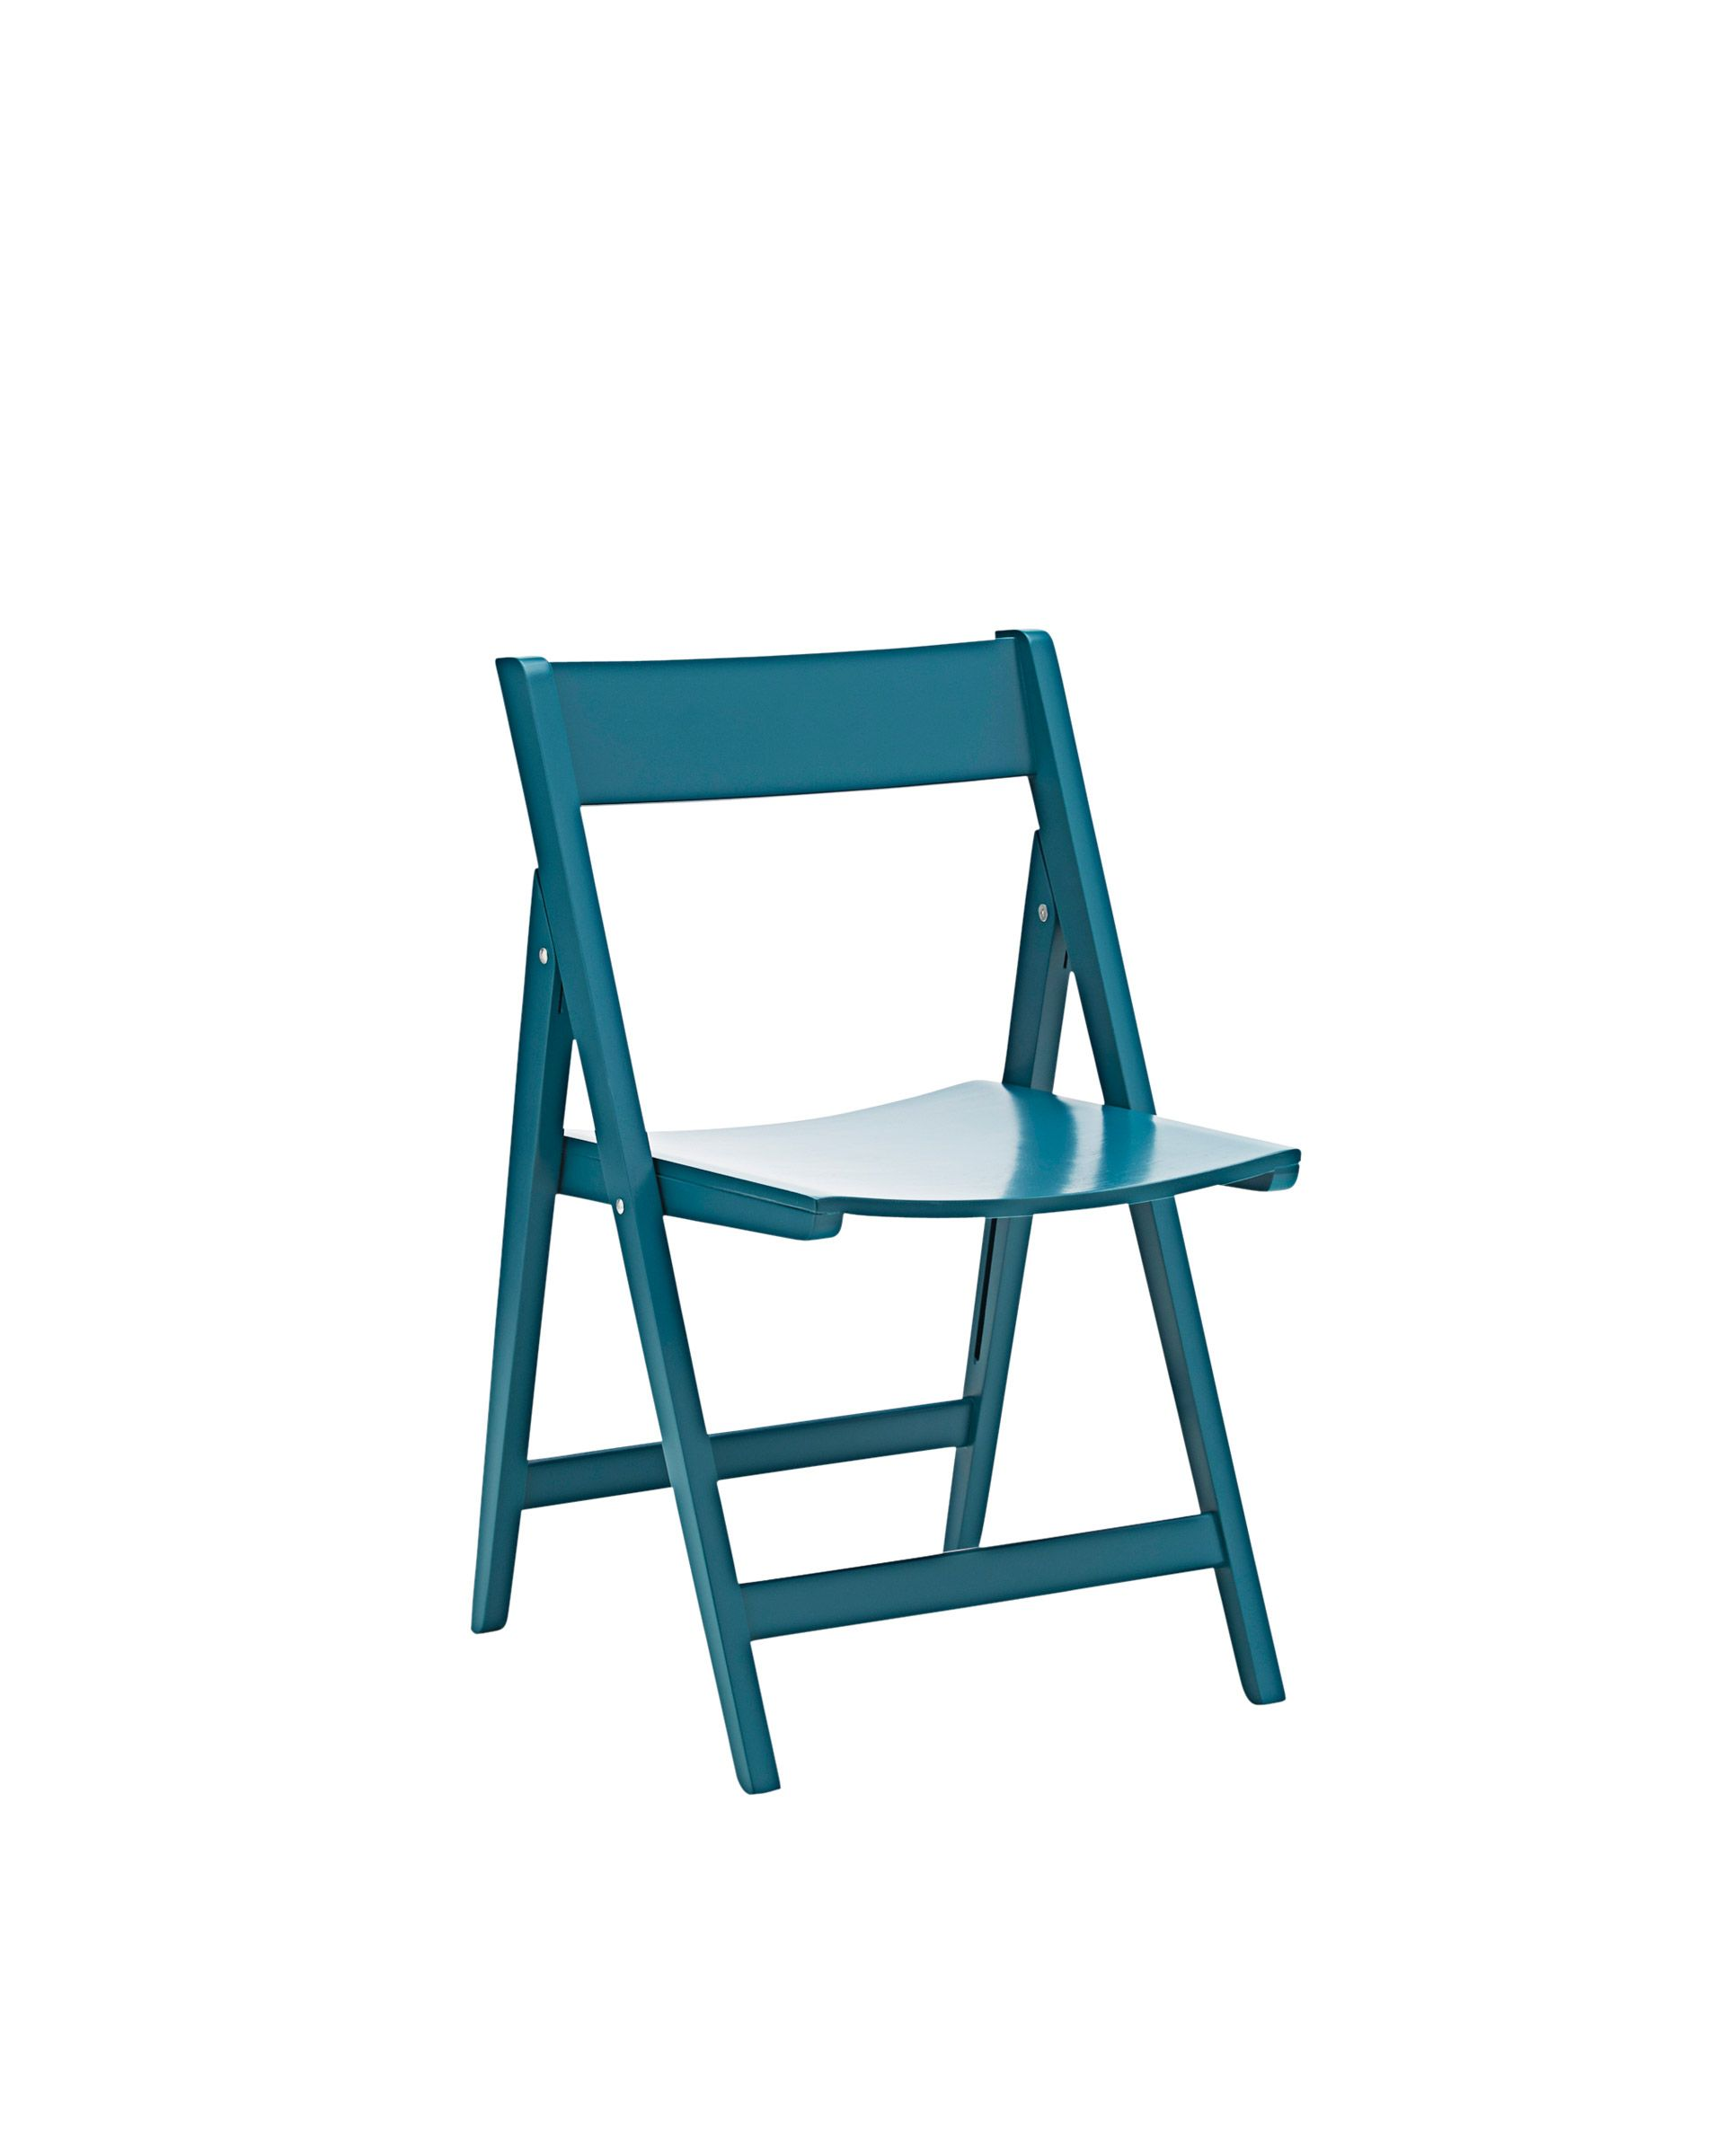 10 Modern Folding Chairs - Stylish Folding Chair Designs